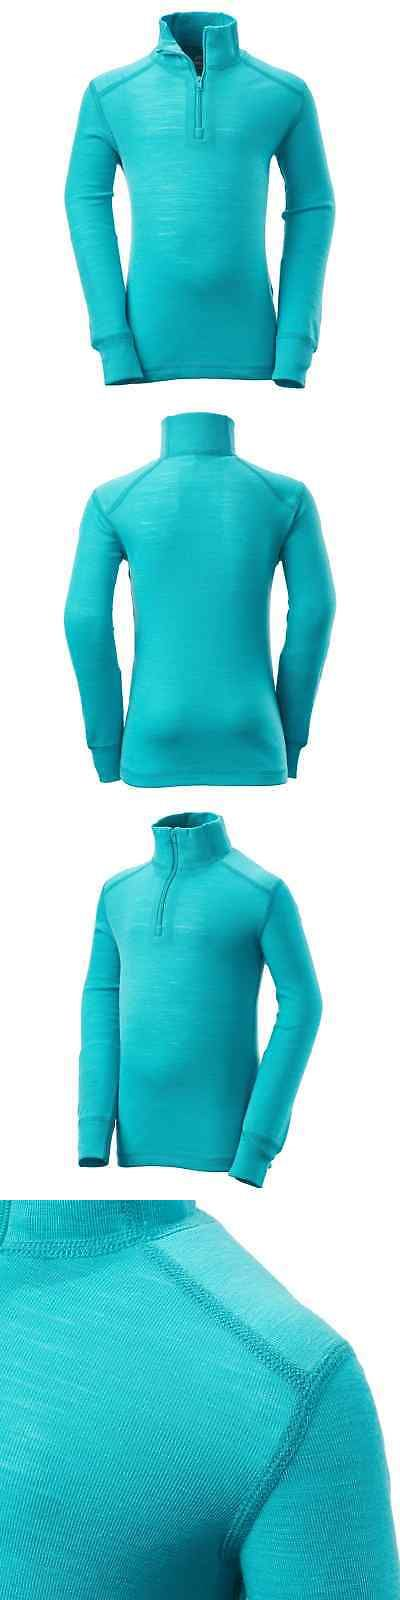 982d9adceb Base Layers 181371  Kathmandu Merinobase Children Kids Long Sleeve Thermal  Underwear Top -  BUY